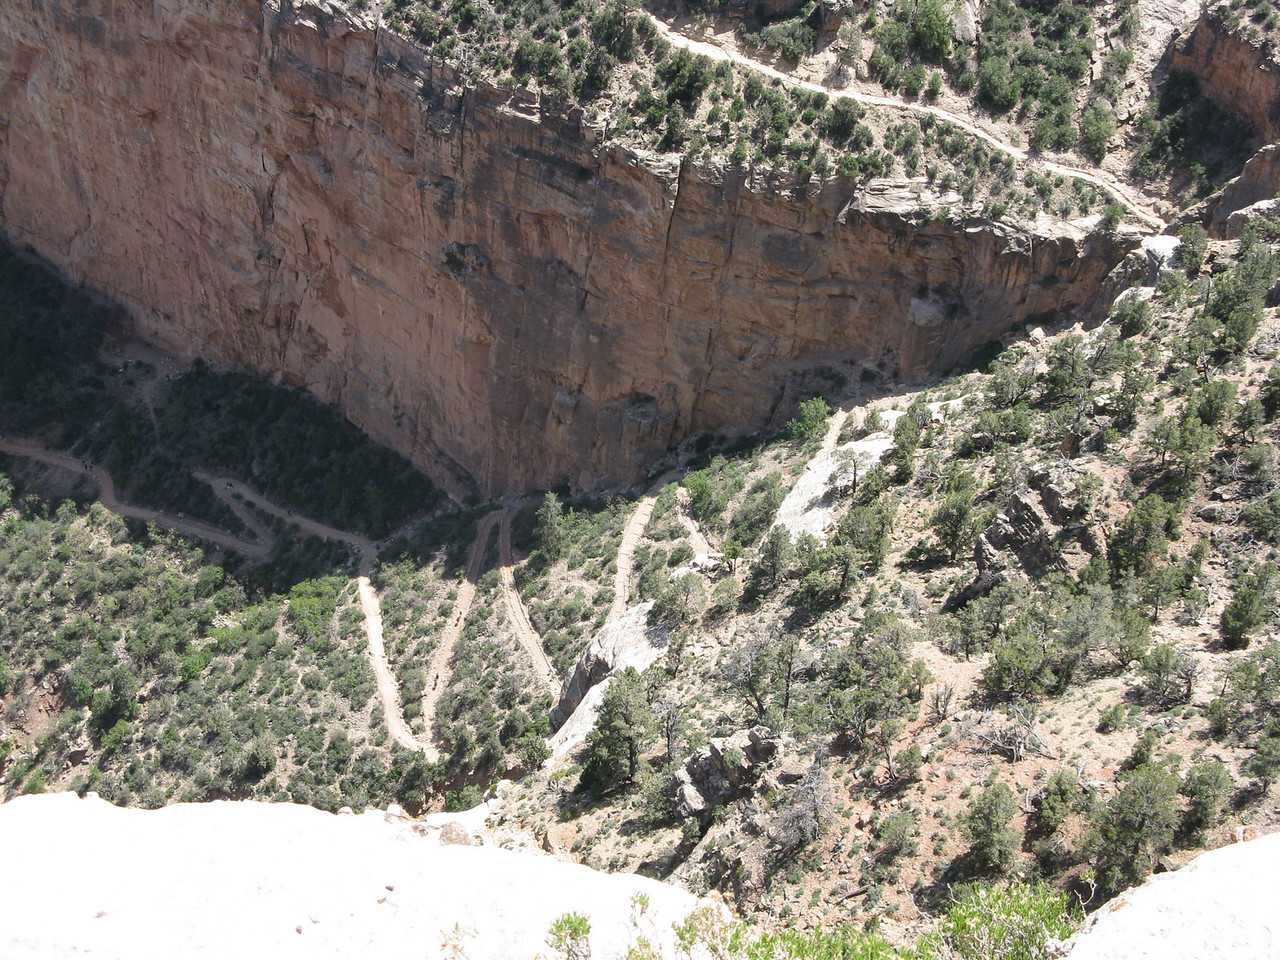 The Bright Angel Trail in the Coconino gap.   The trail zigzags up the slope in the break in the sandstone cliffs.  This occurs about 1 mile below the south rim.  The Second Tunnel is at the top of Coconino gap, but it cannot be seen in this image.